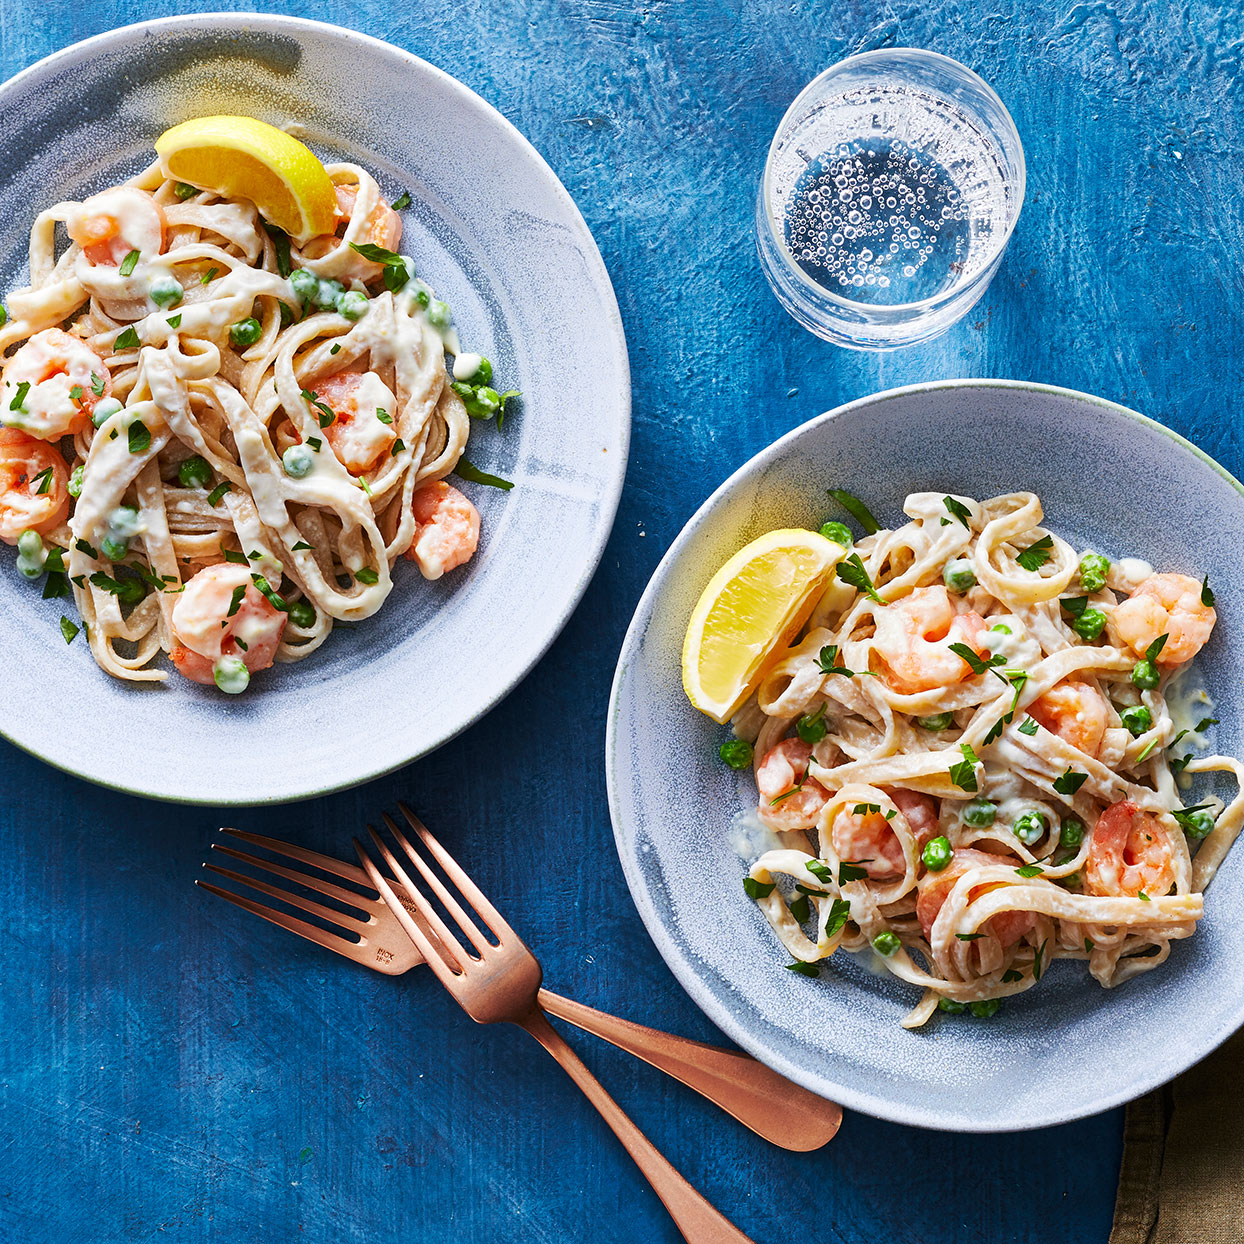 This bright and lemony shrimp pasta dish was inspired by traditional Alfredo but comes in at only a fraction of the fat and calories. Reduced-fat cream cheese adds body to the sauce, while Parmesan cheese adds its signature robust flavor. Source: EatingWell.com, March 2020